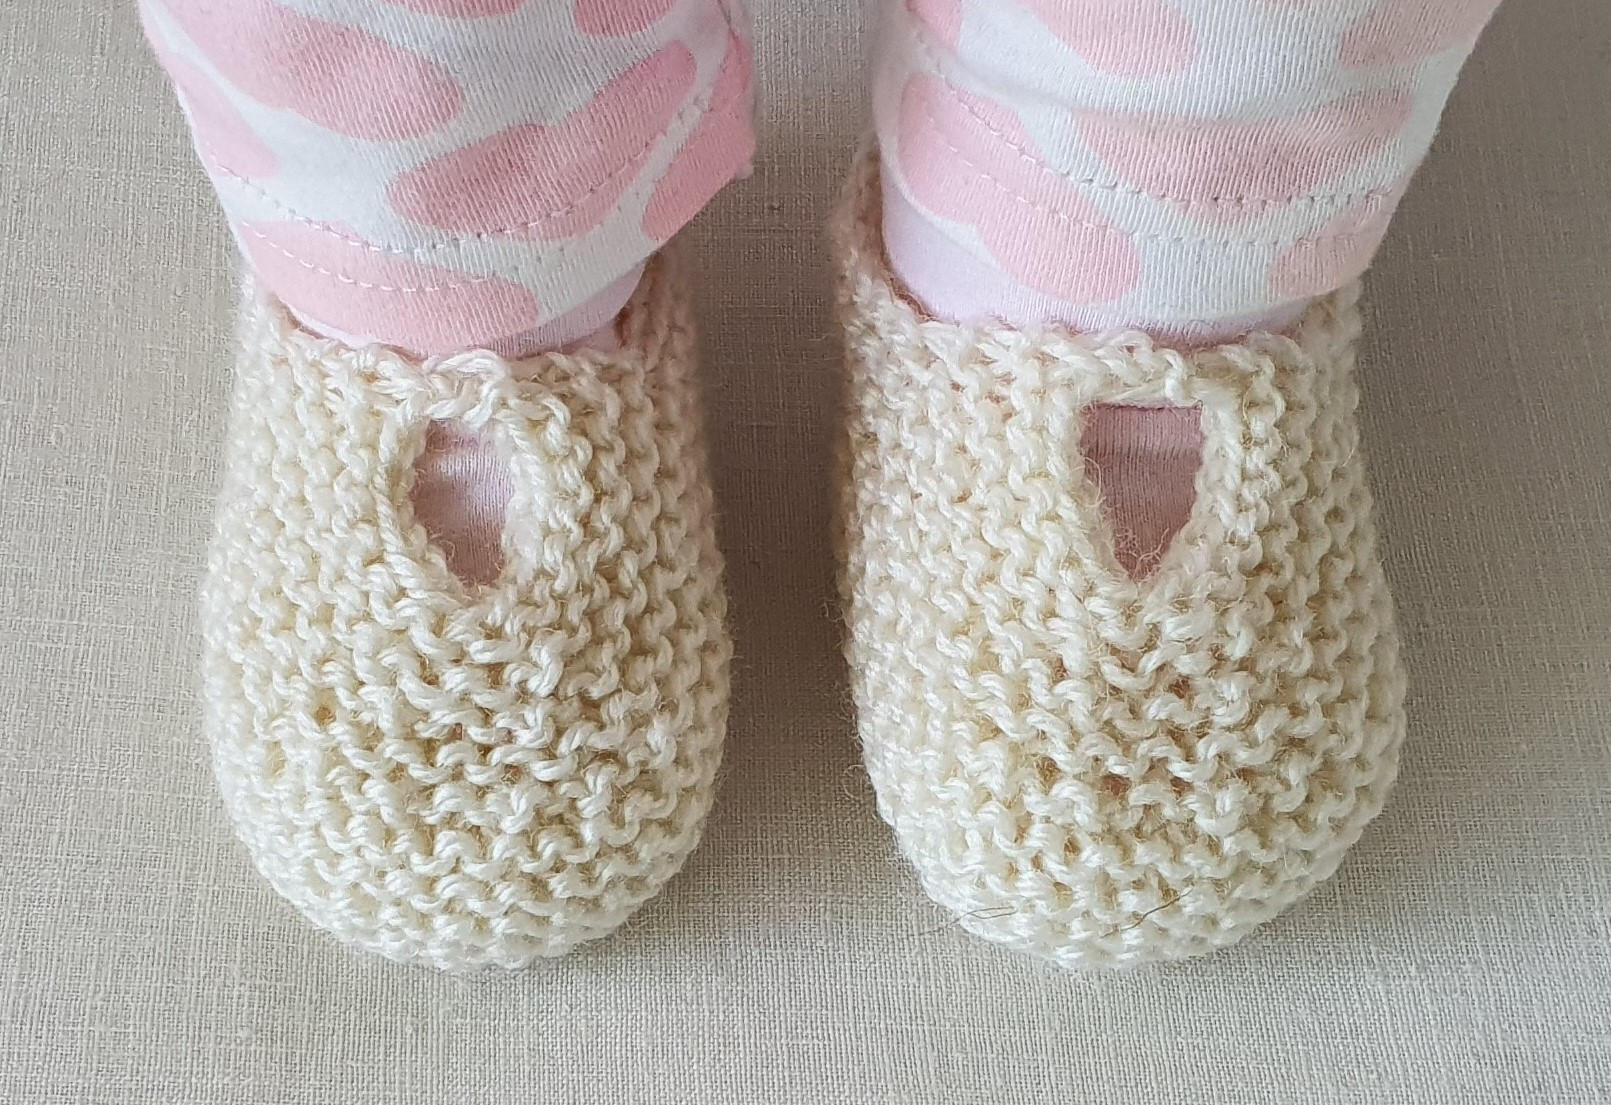 72596884b Knitting Patterns Online - Knitting Patterns For 8ply Baby Shoes - Anita